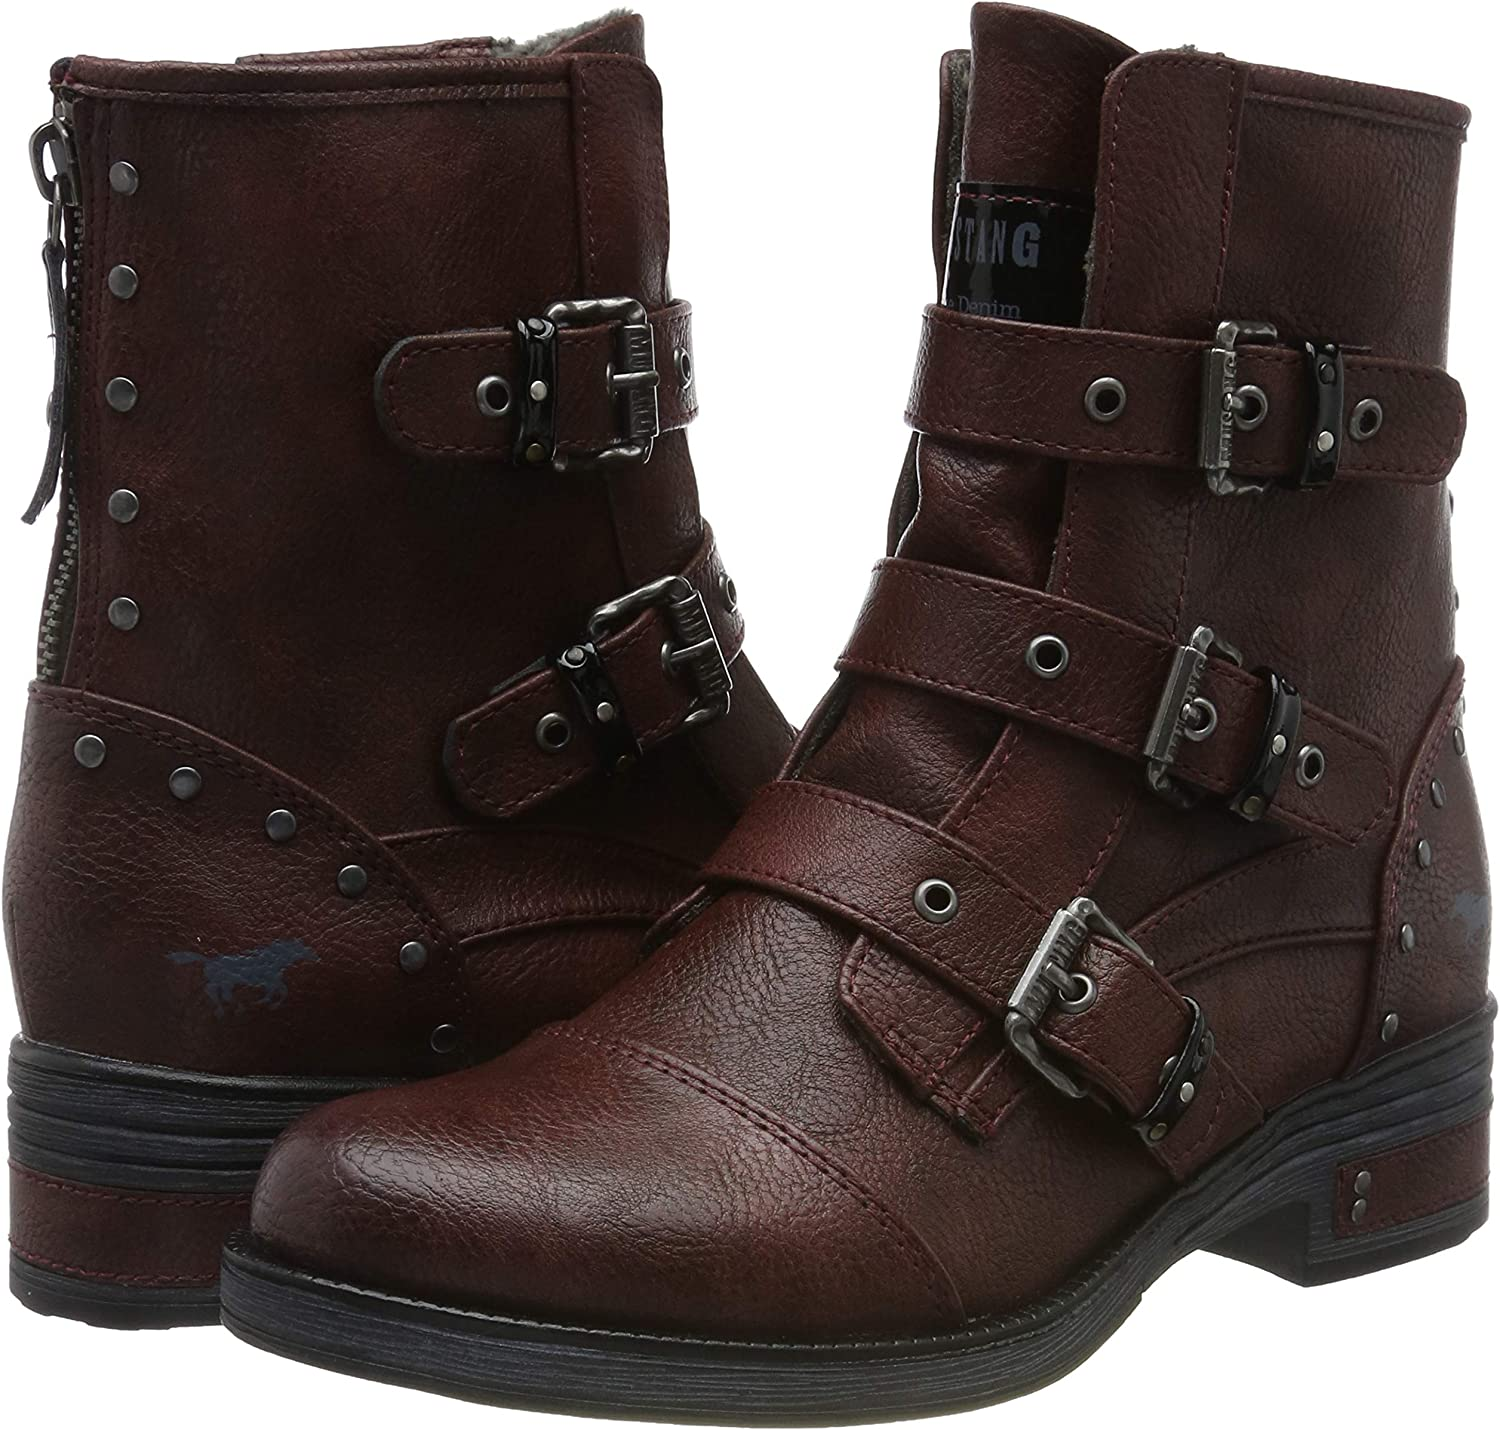 Mustang 1293 506 55, Bottines Femme: : Chaussures